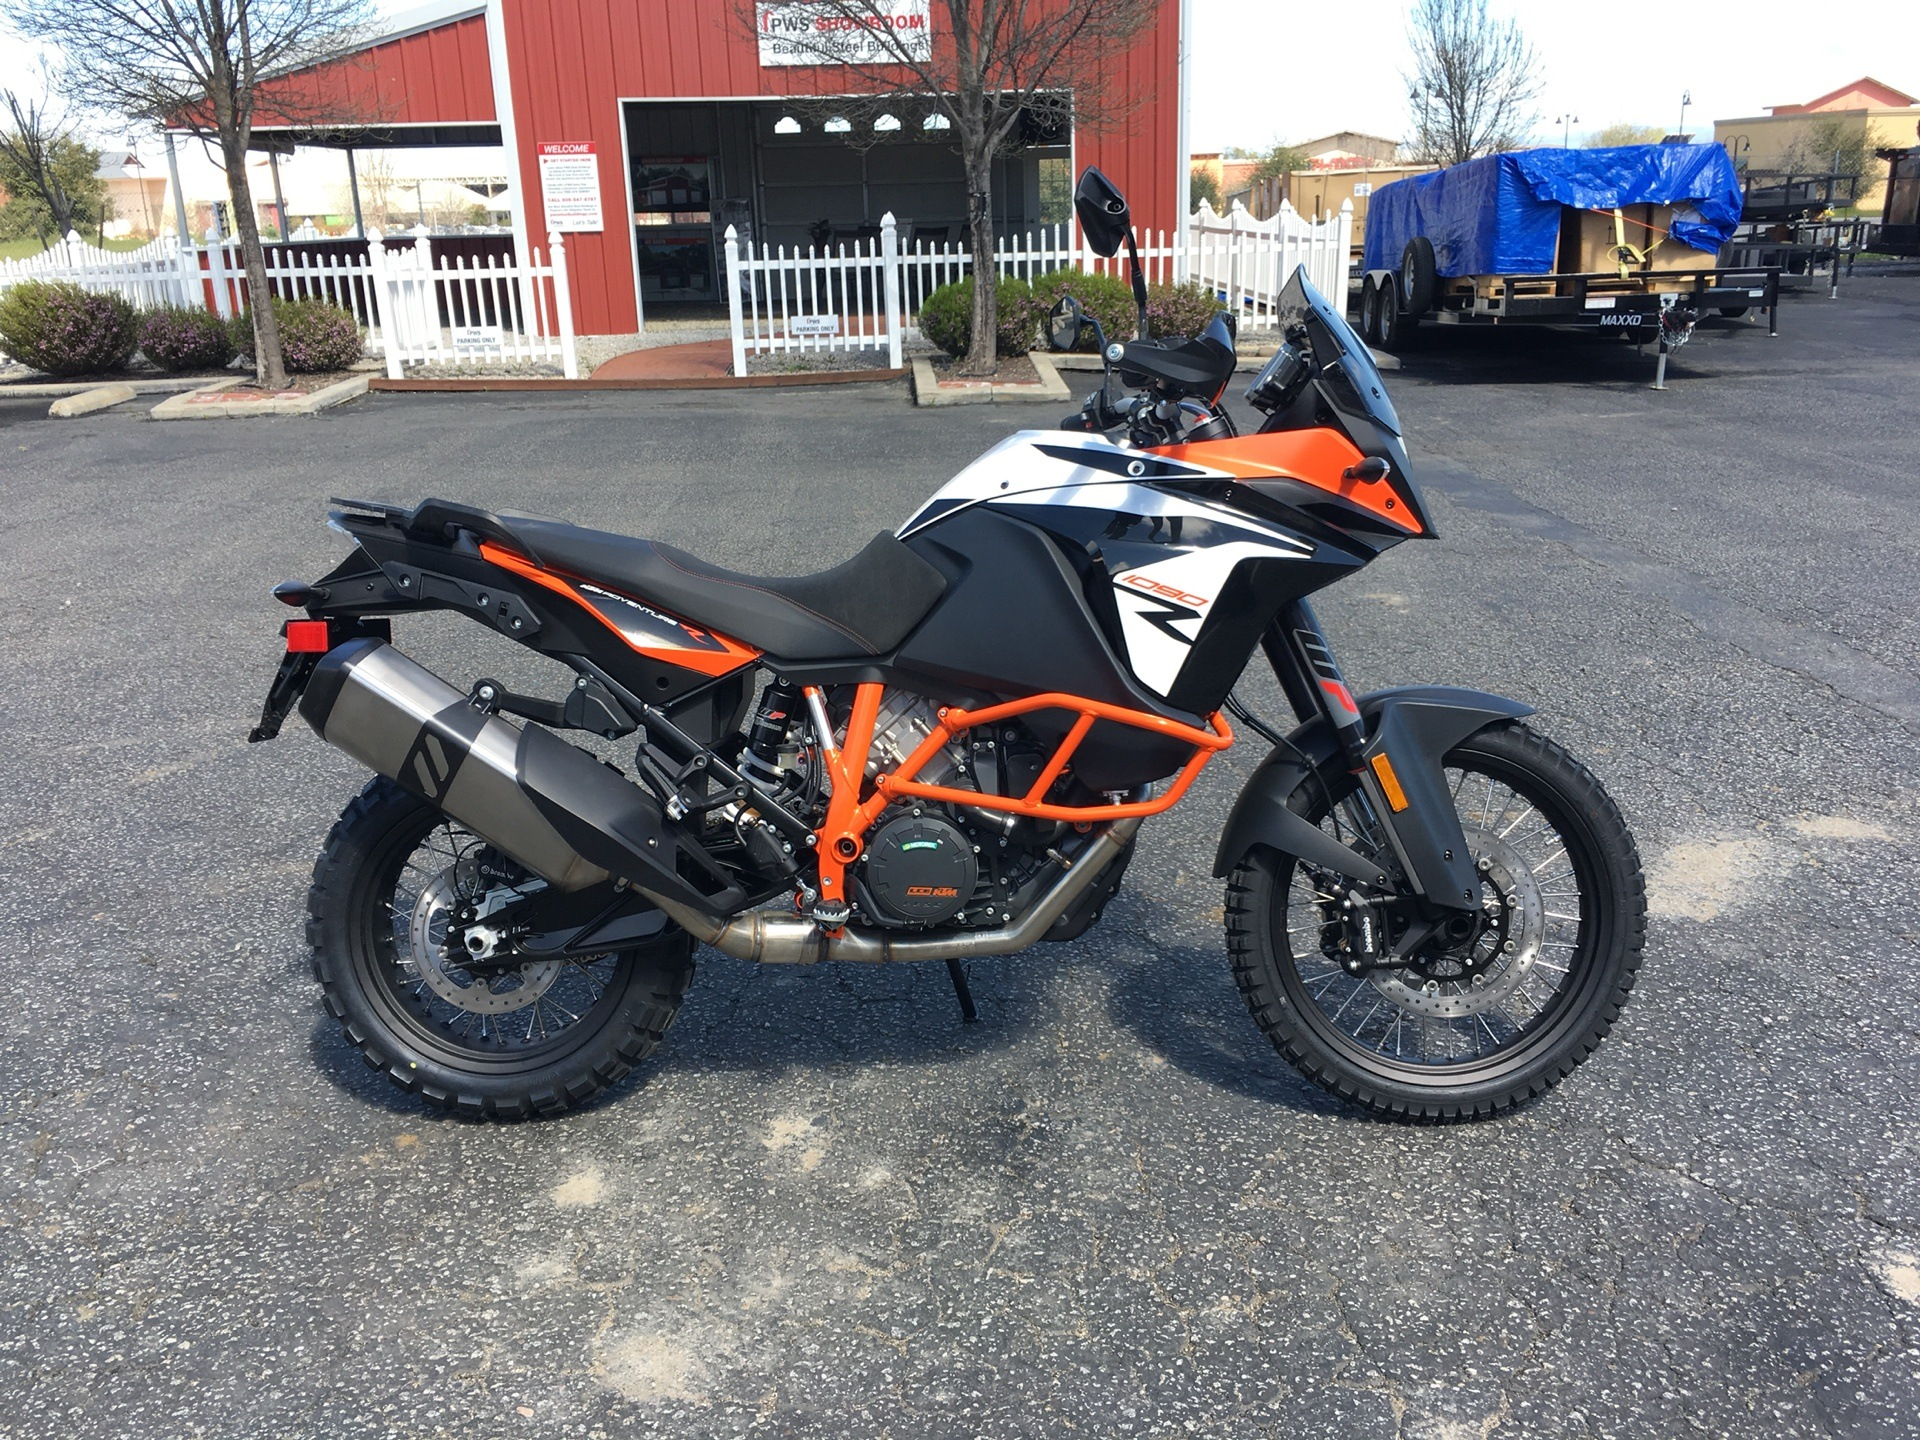 new 2019 ktm 1090 adventure r motorcycles in paso robles ca stock number 05987. Black Bedroom Furniture Sets. Home Design Ideas